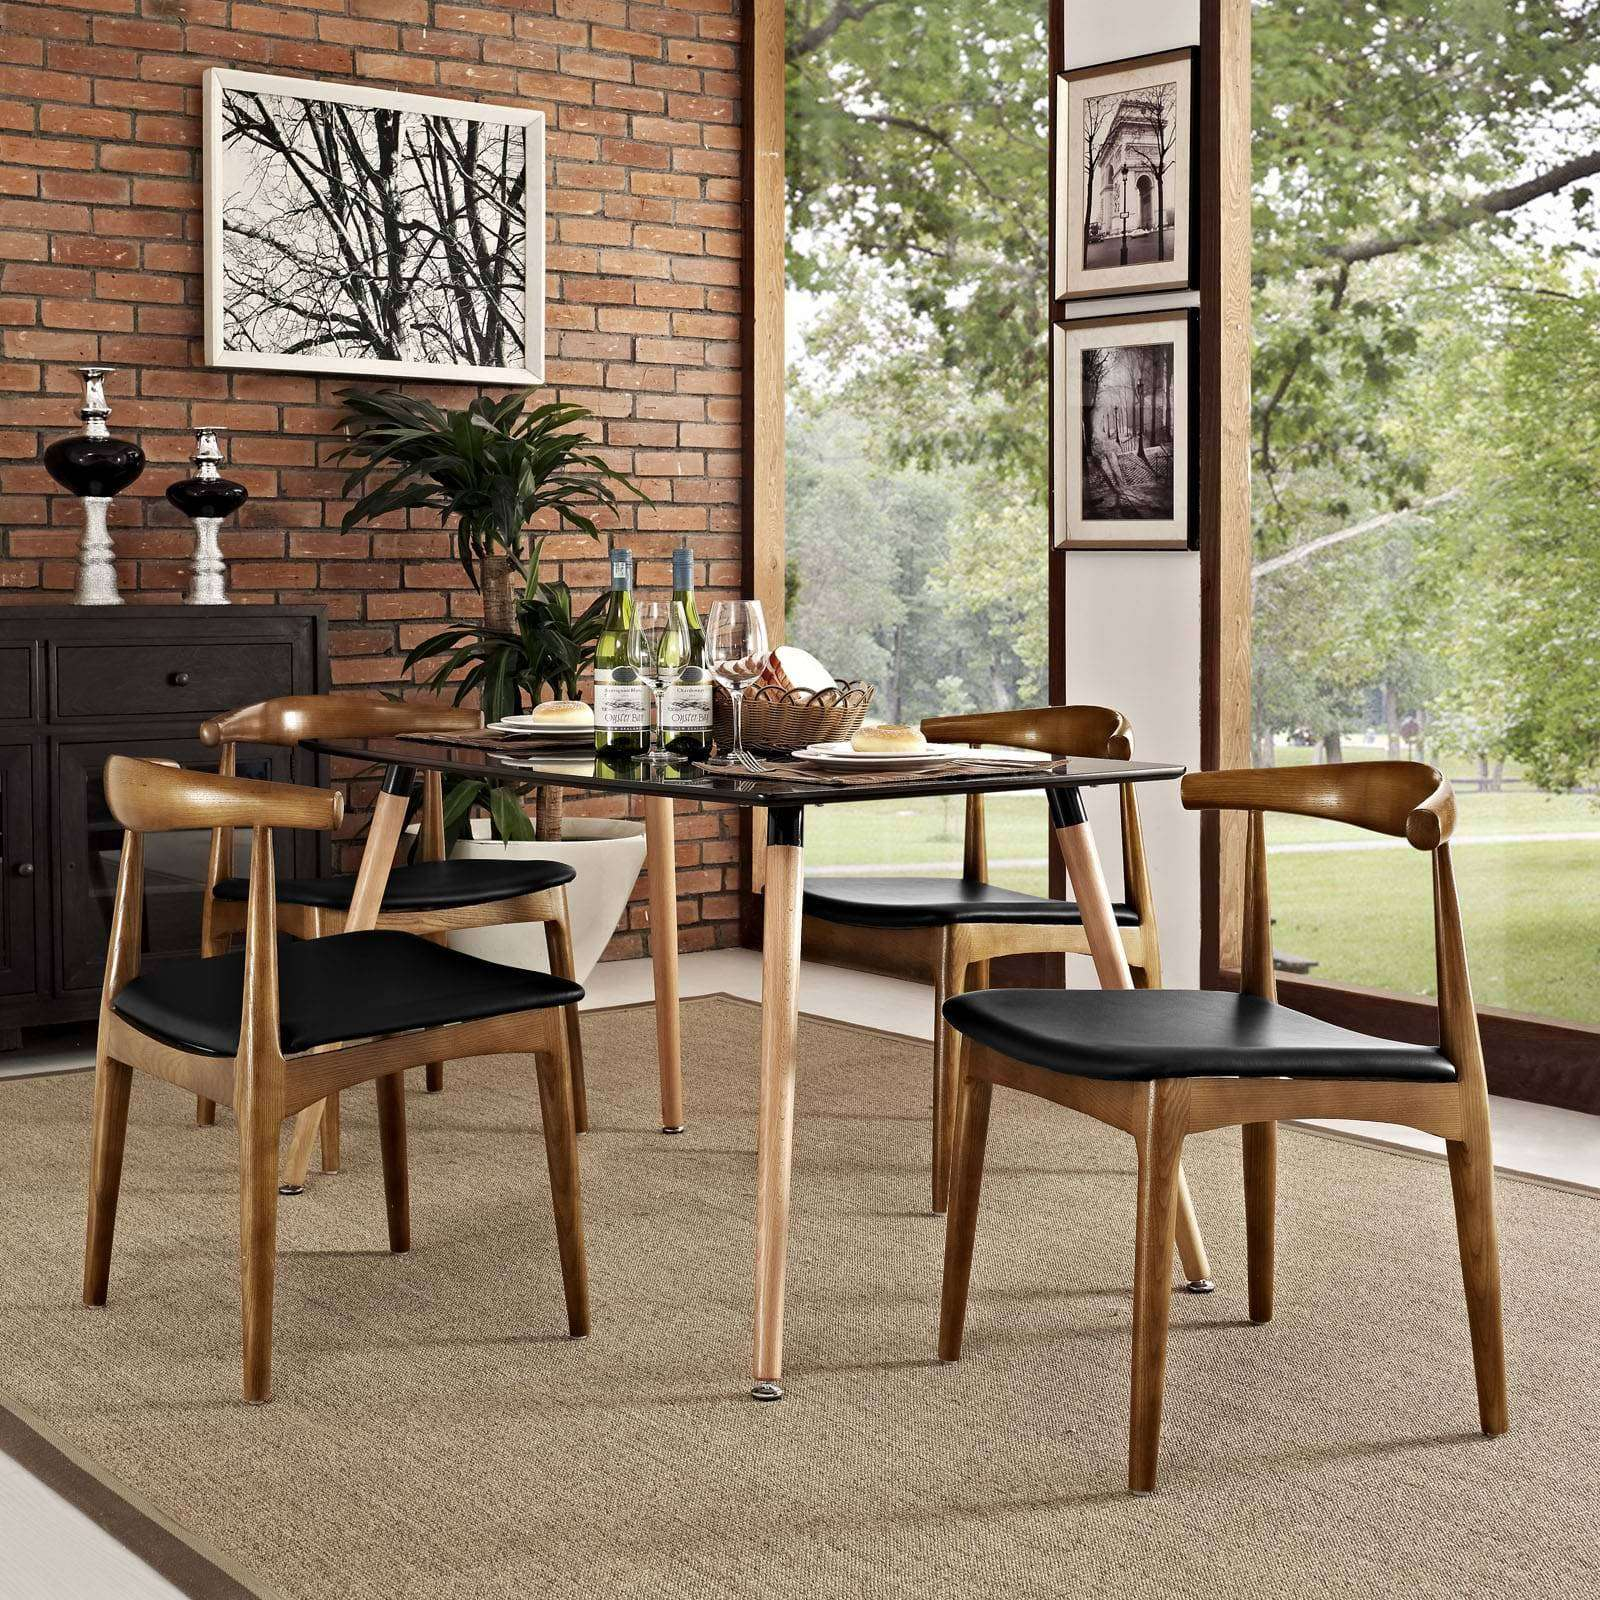 dining chair sets of 4 office chairs zimbabwe modterior room tracy